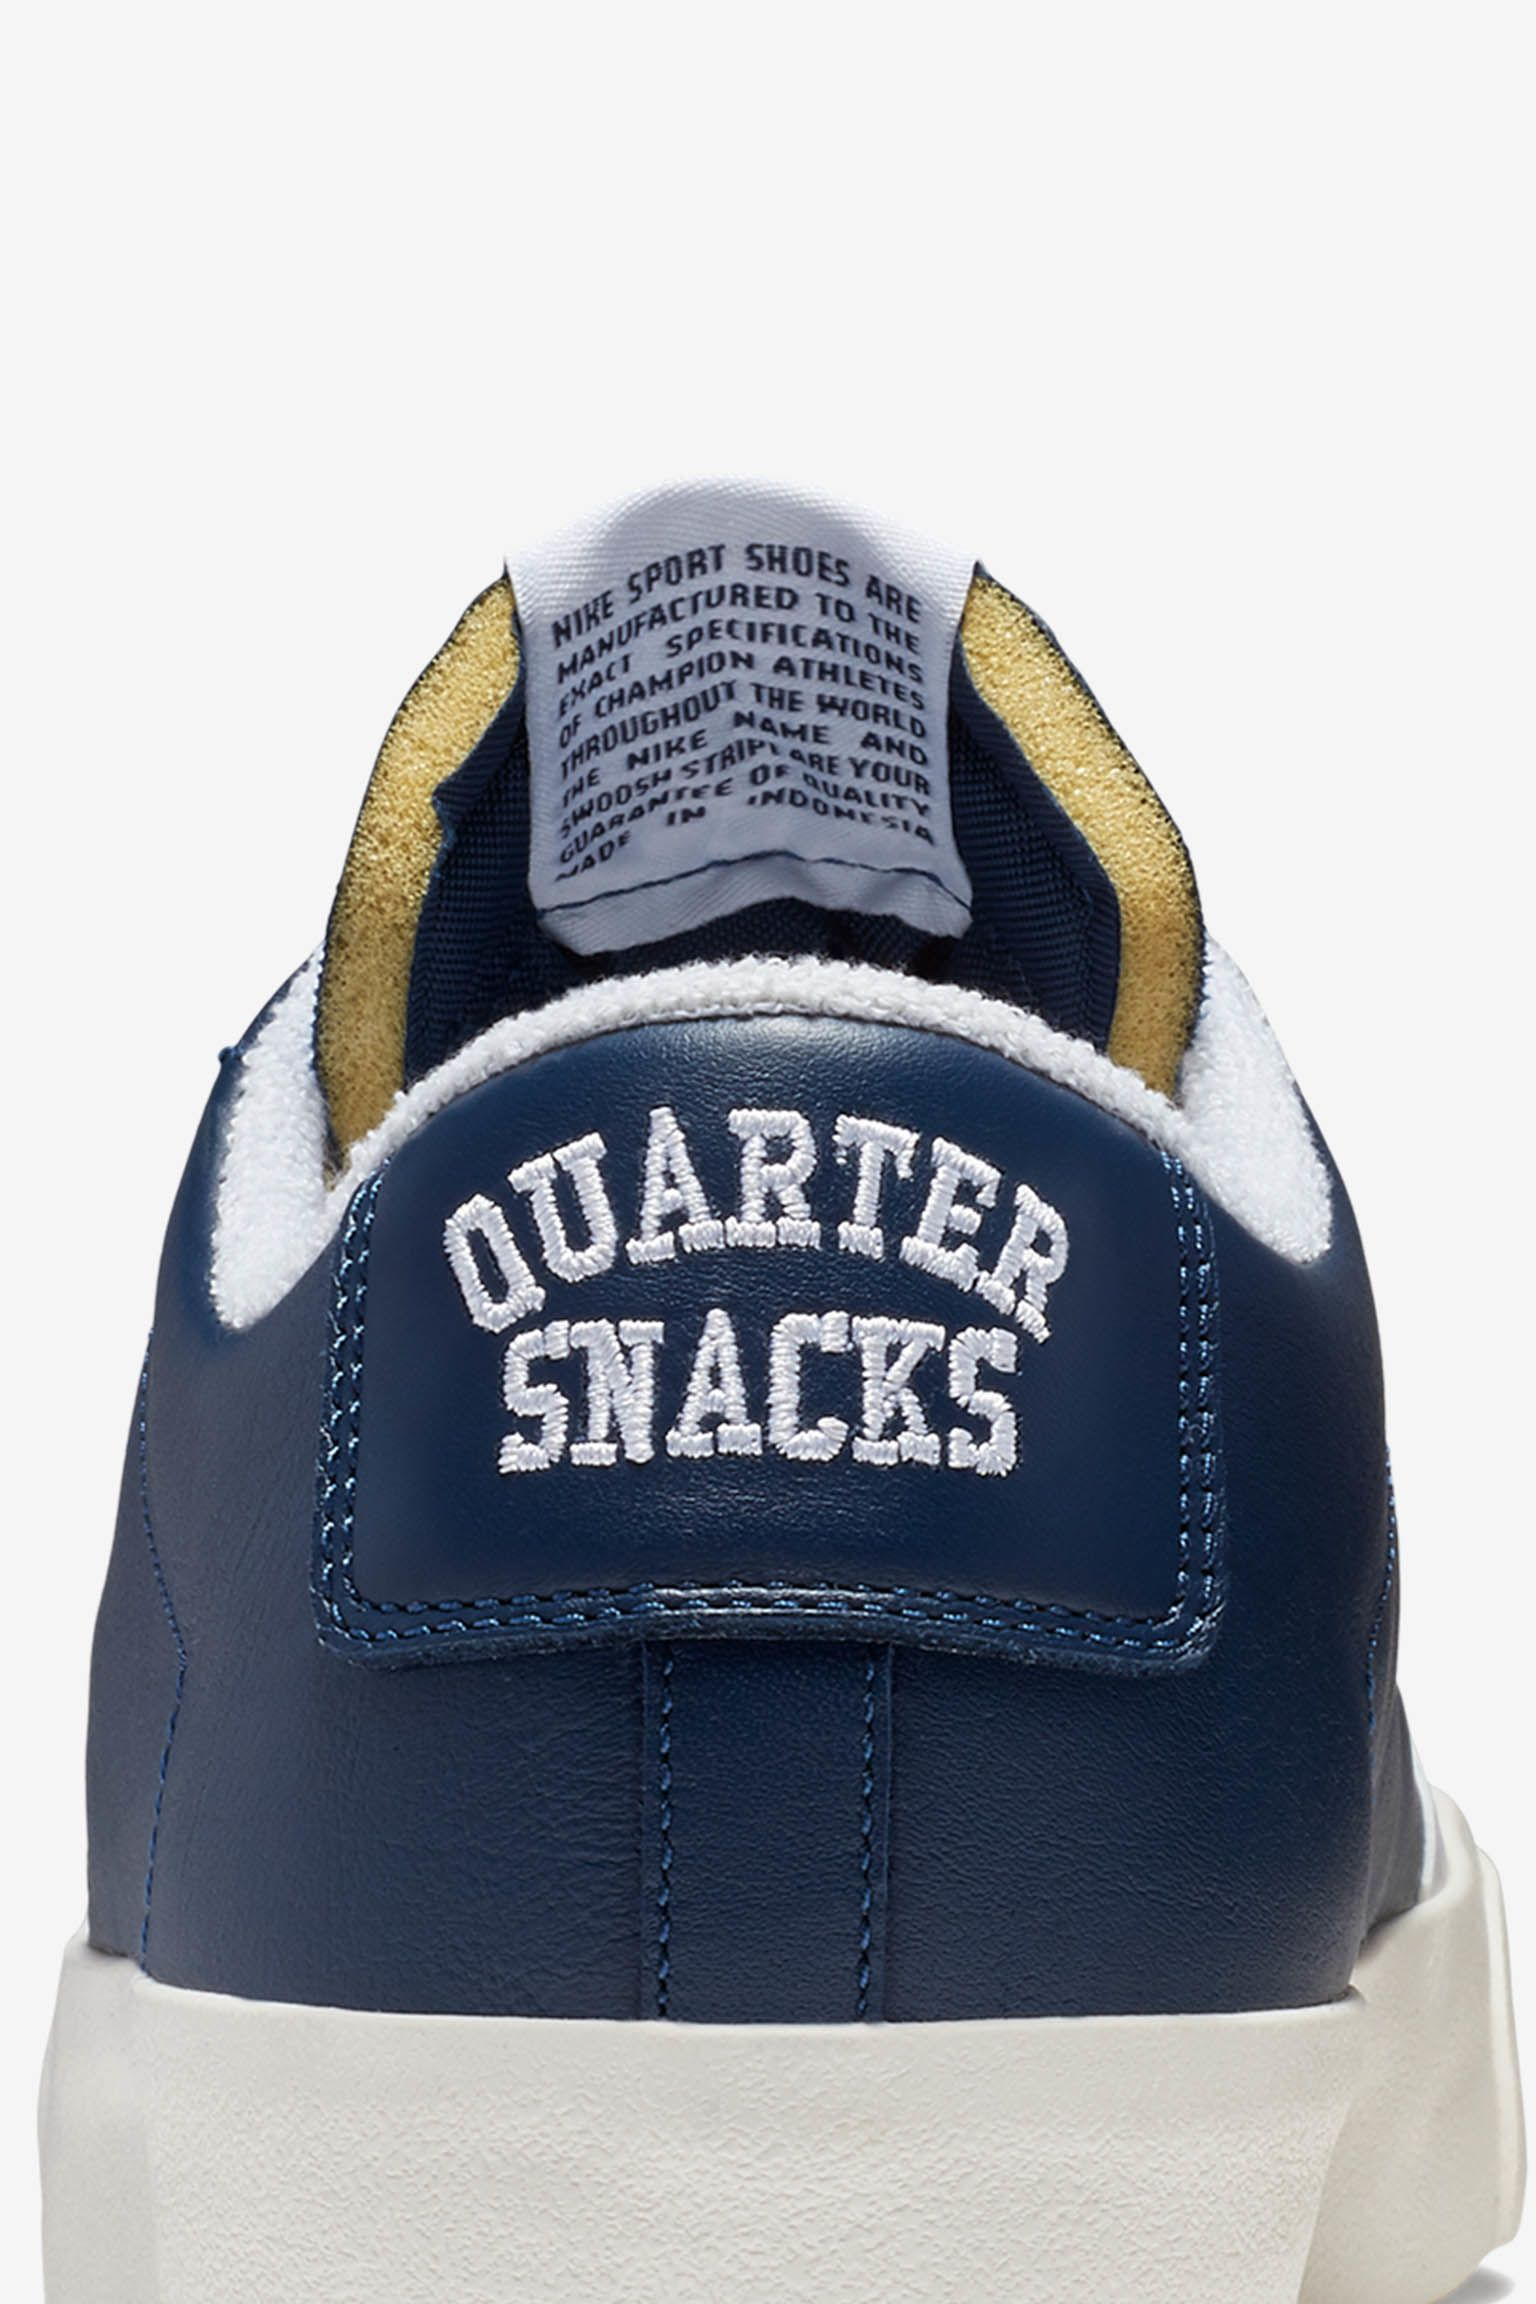 Nike SB Zoom Blazer Low Quartersnacks 'Navy & White' 发布日期